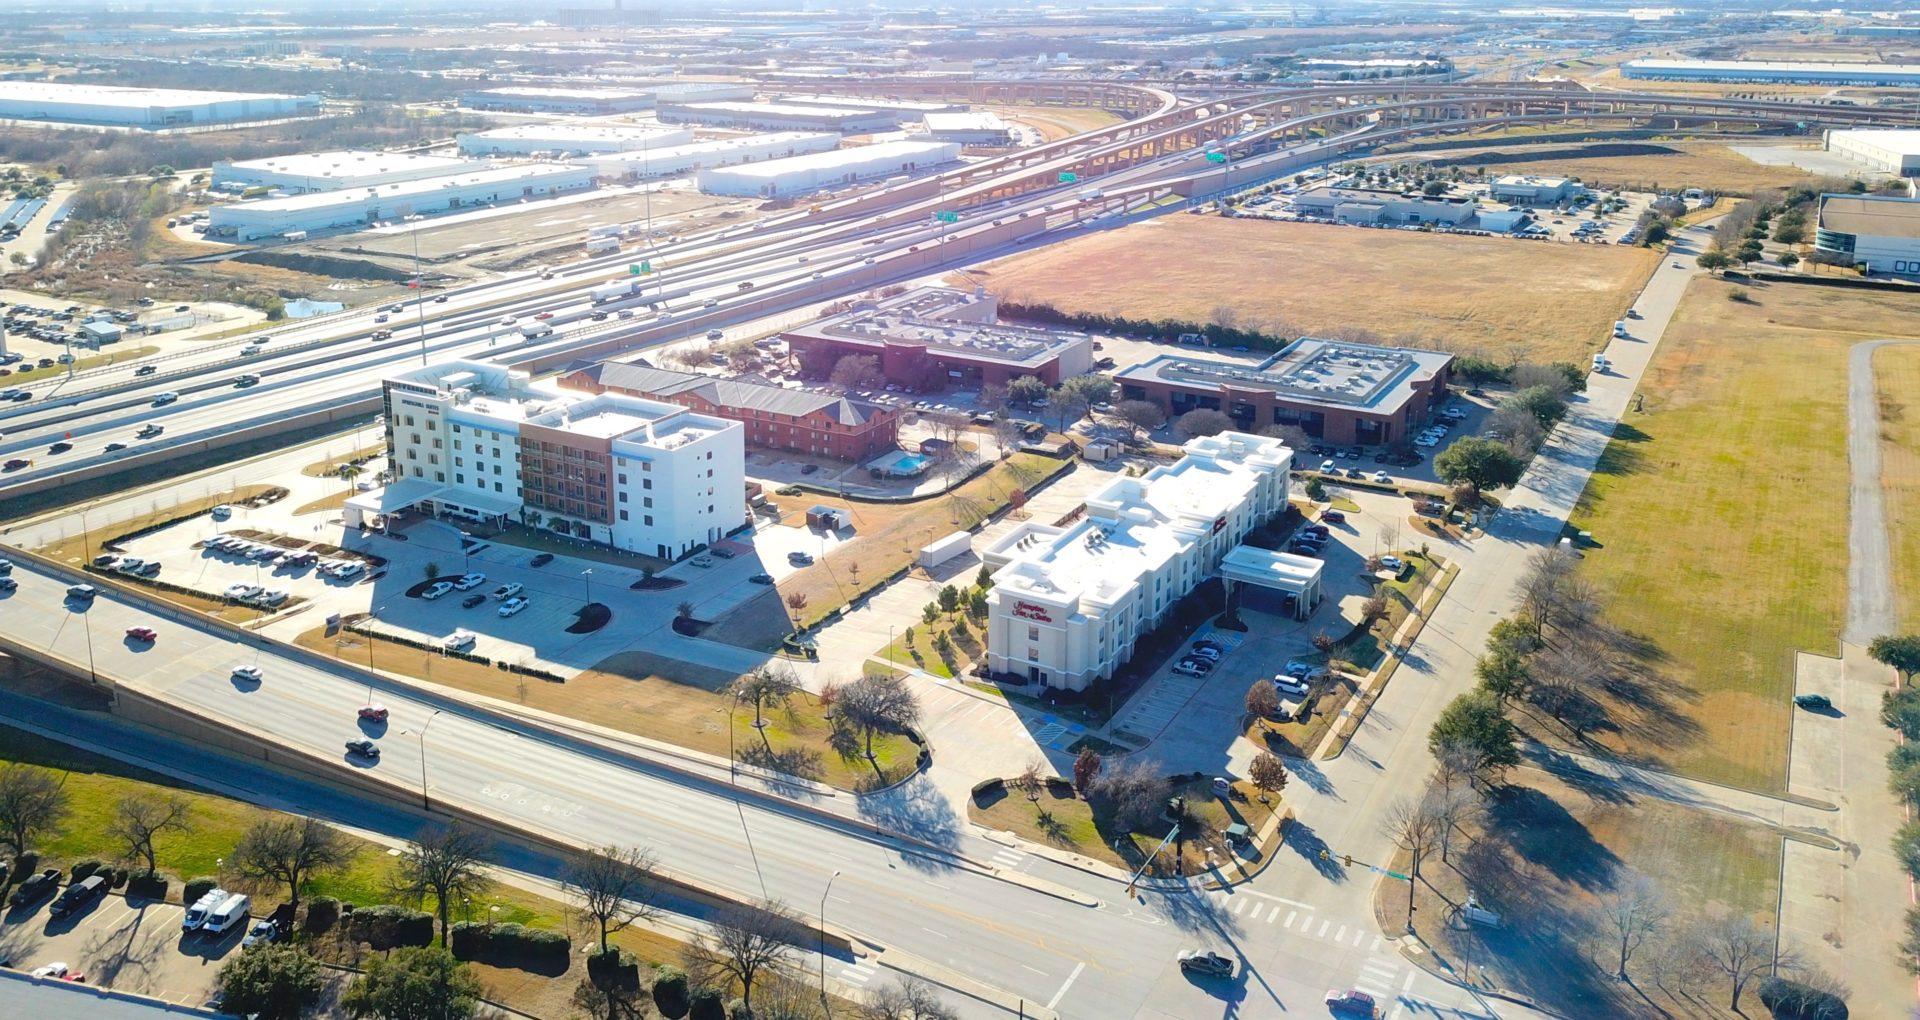 Aerial view of the two Fossil Creek Place buildings with the surrounding parking lots and hotels and adjacent highways